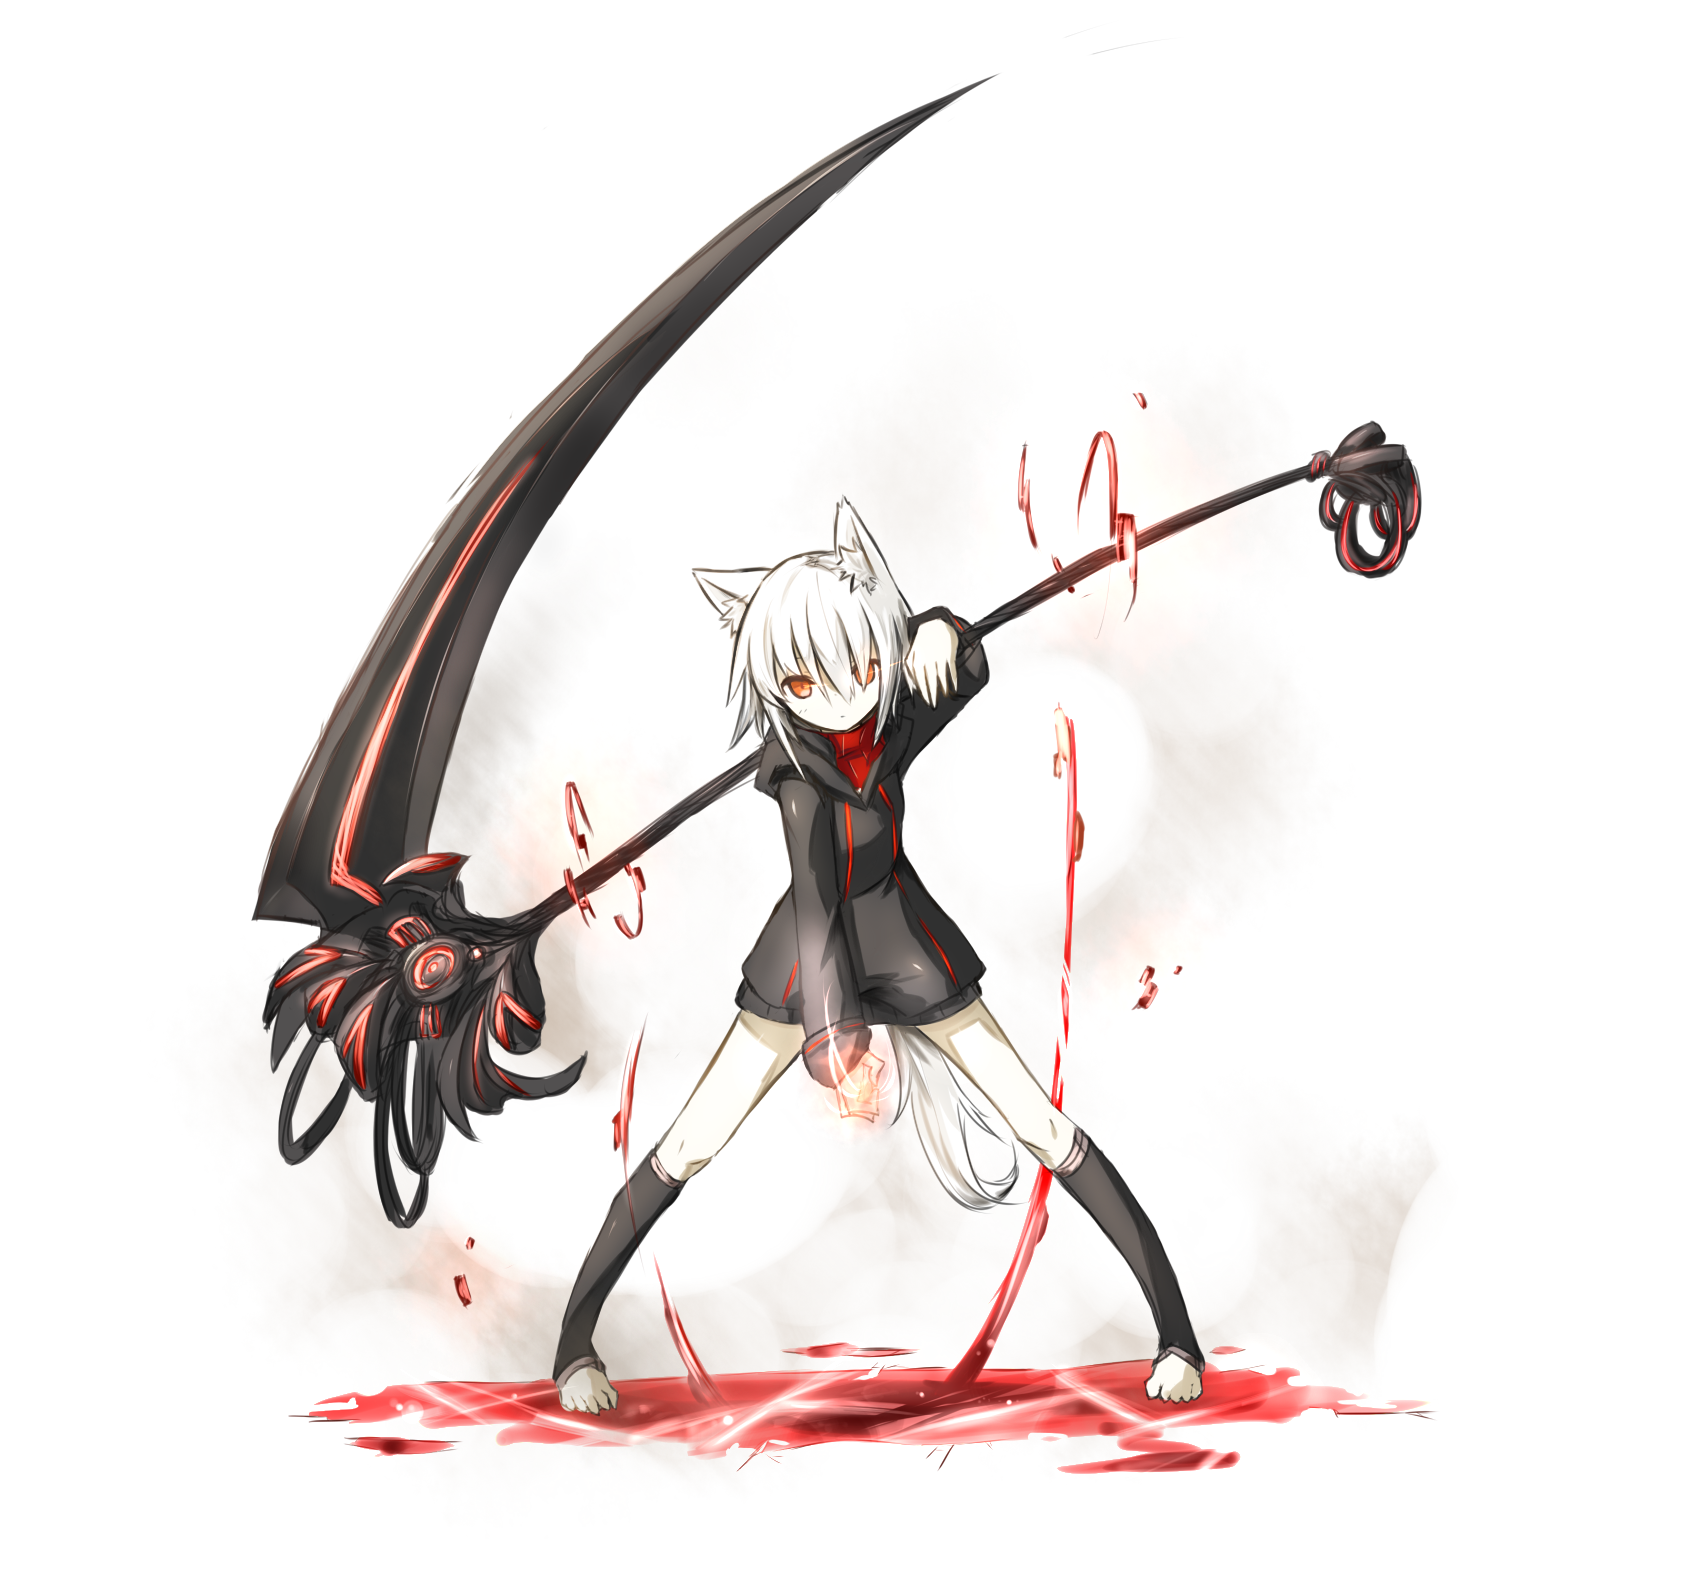 Drawn scythe anime double Traditional Games tg/ 26371115